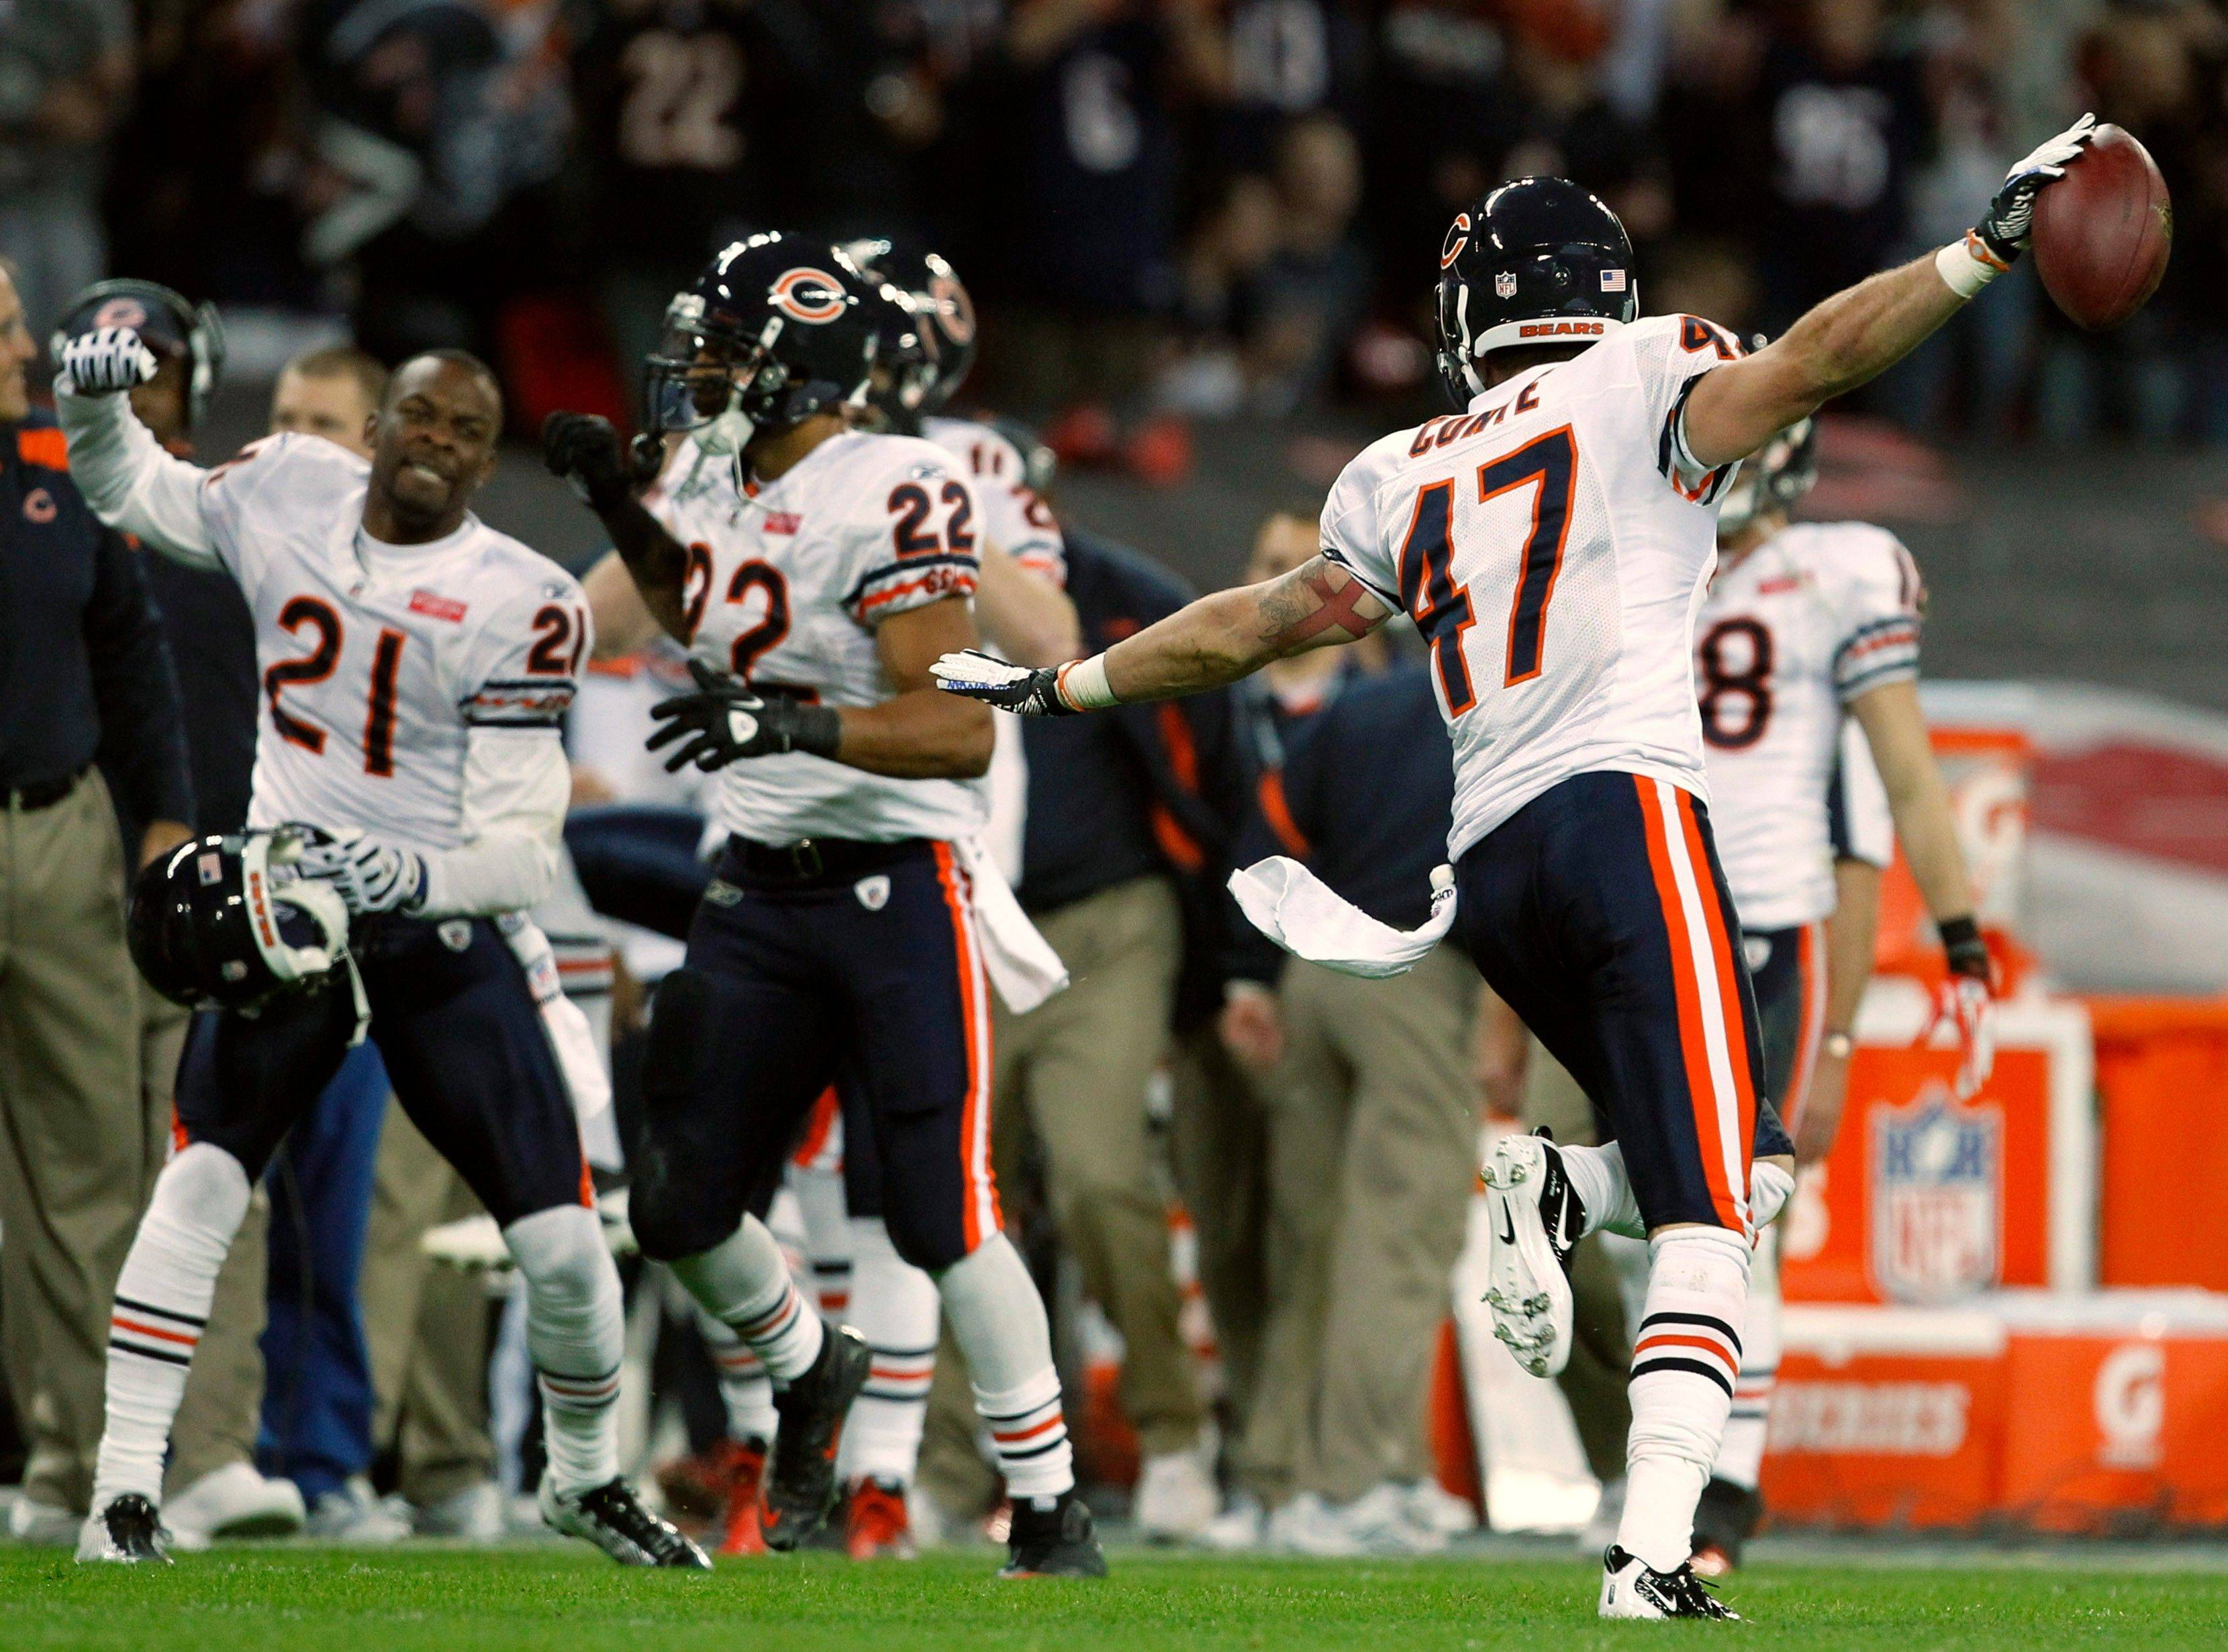 Chicago Bears defensive back Chris Conte celebrates after intercepting a pass intended for Tampa Bay Buccaneers wide receiver Mike Williams during the first half.